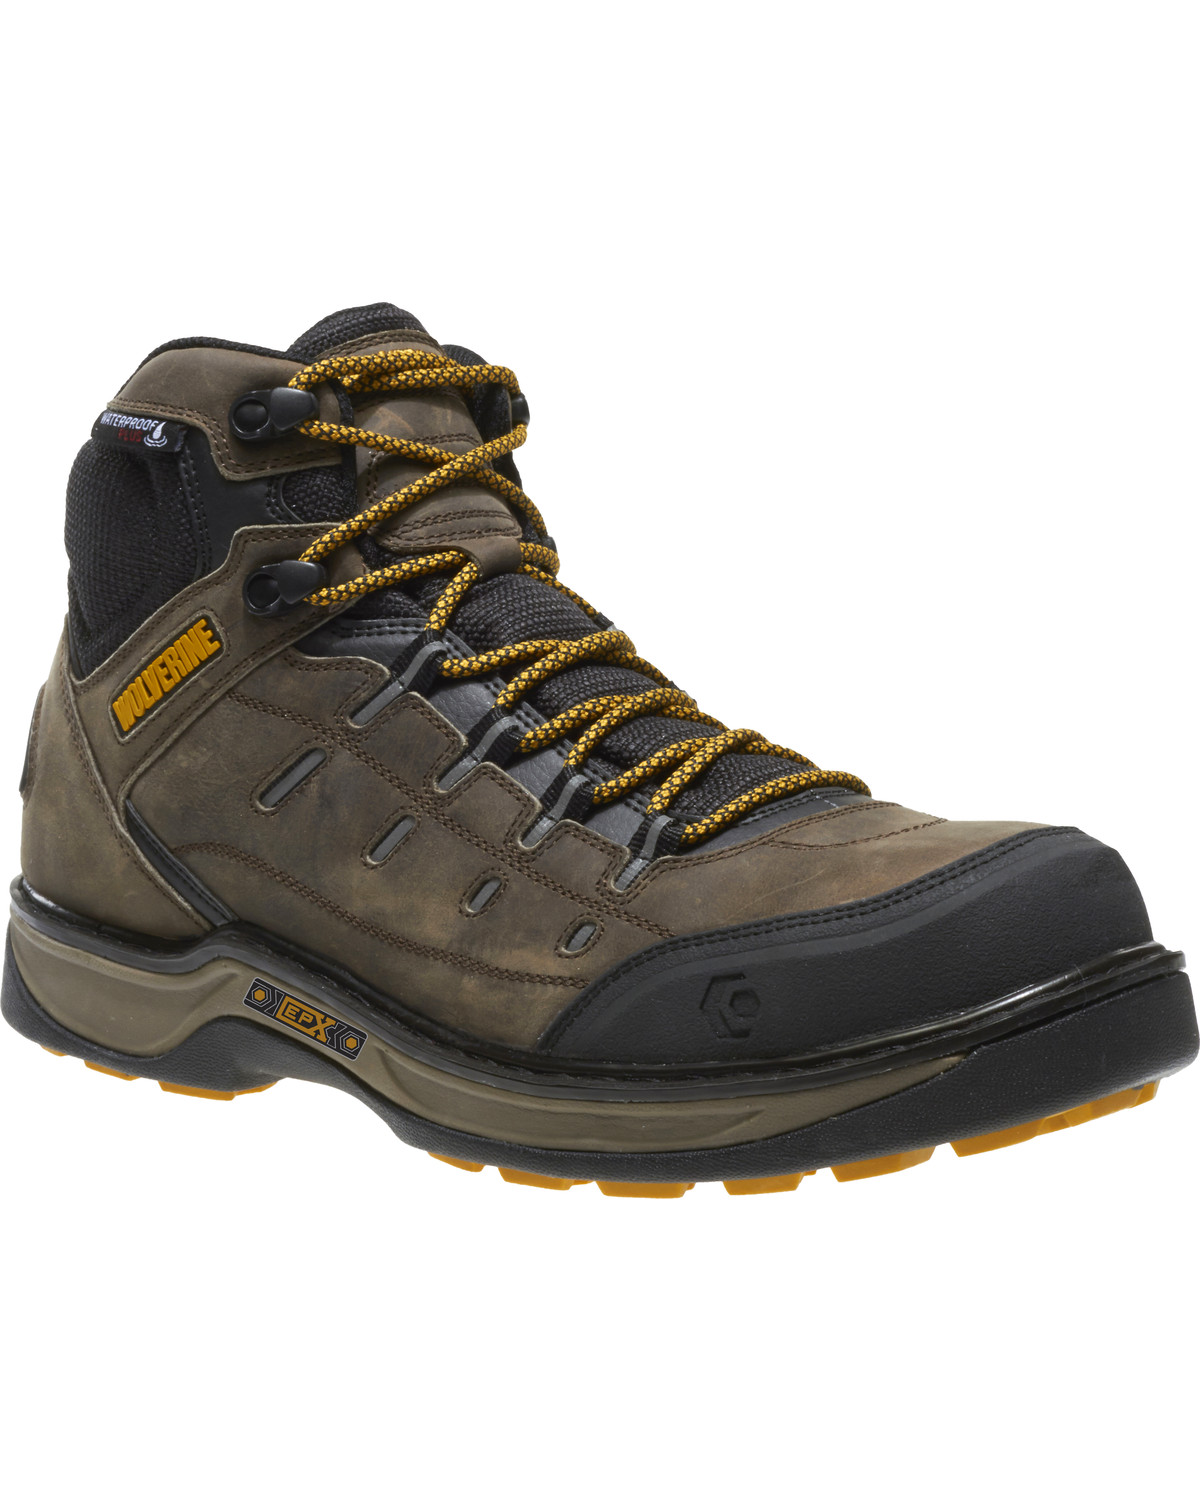 9bc977ce892 Wolverine Men's Edge LX Waterproof Work Boots - Composite Toe